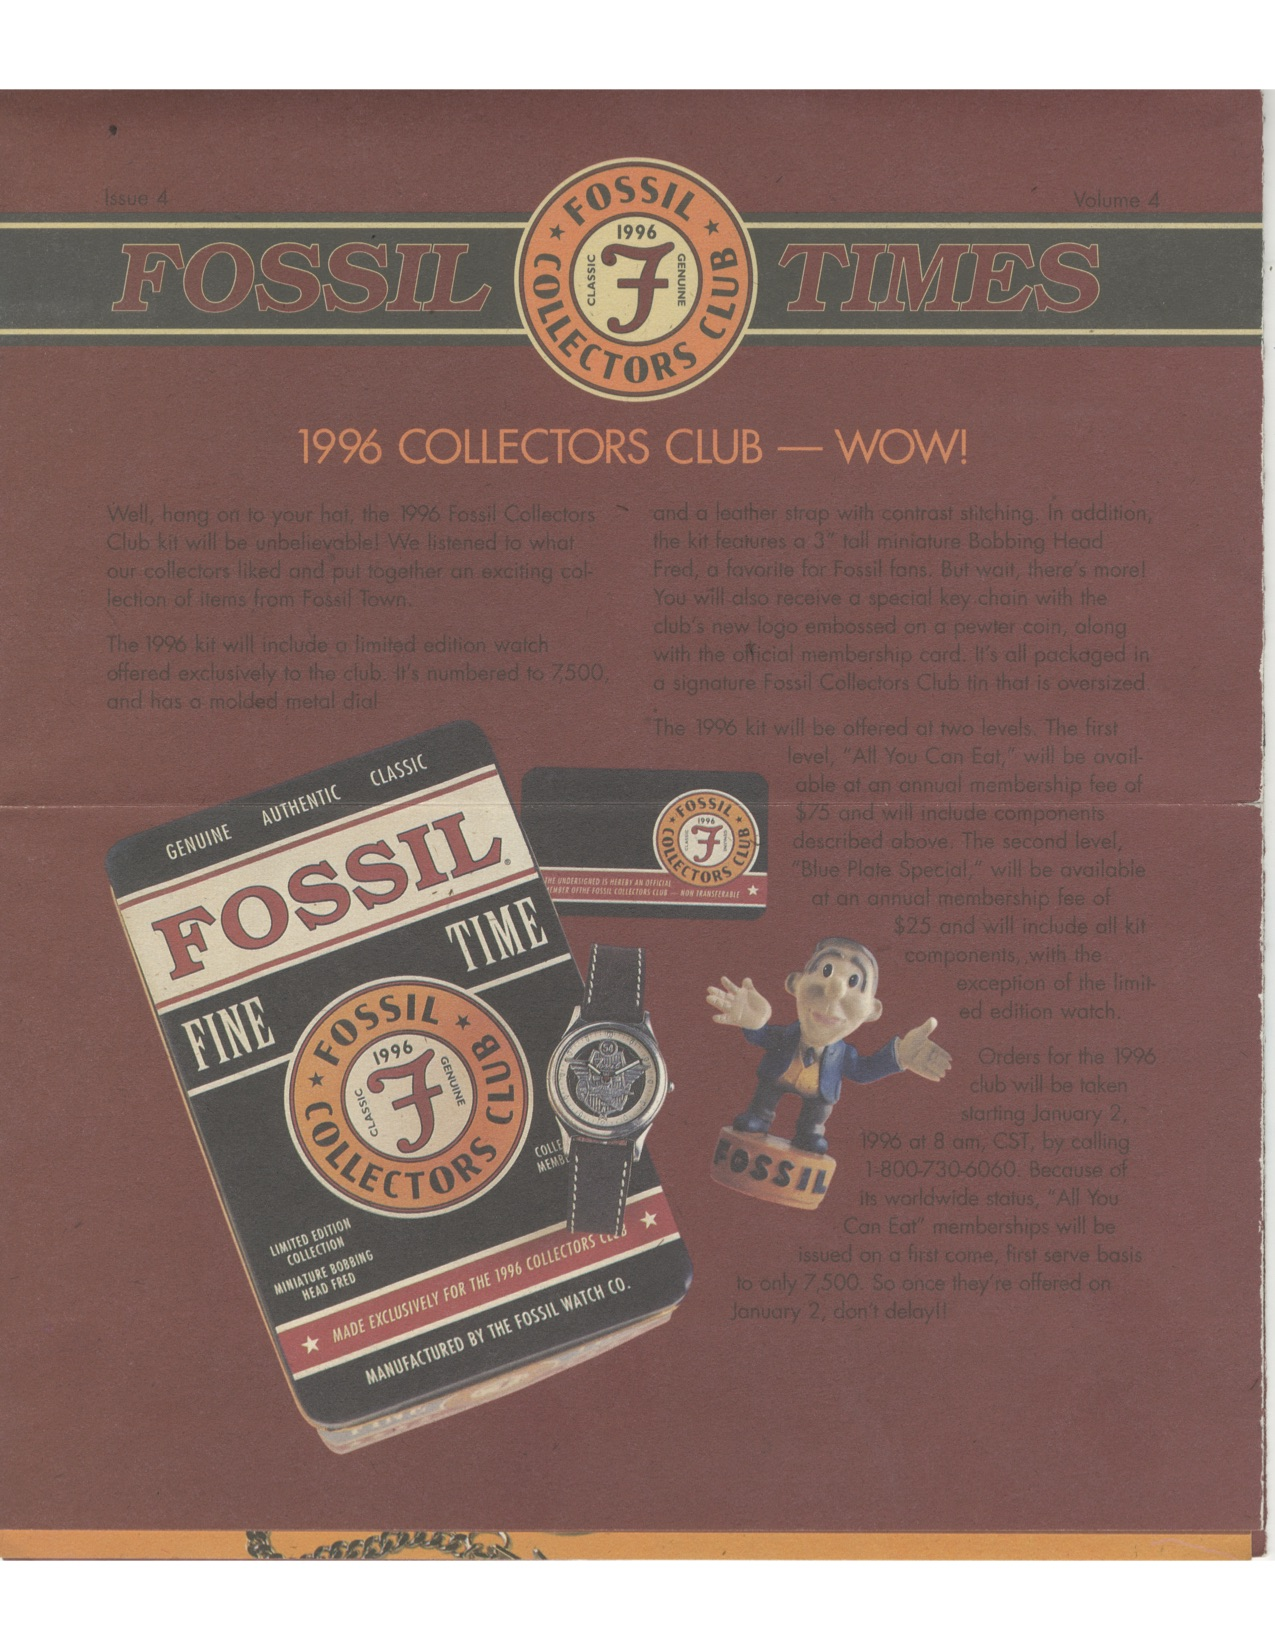 _1996_FossilTimes_V3_1_cover.jpg